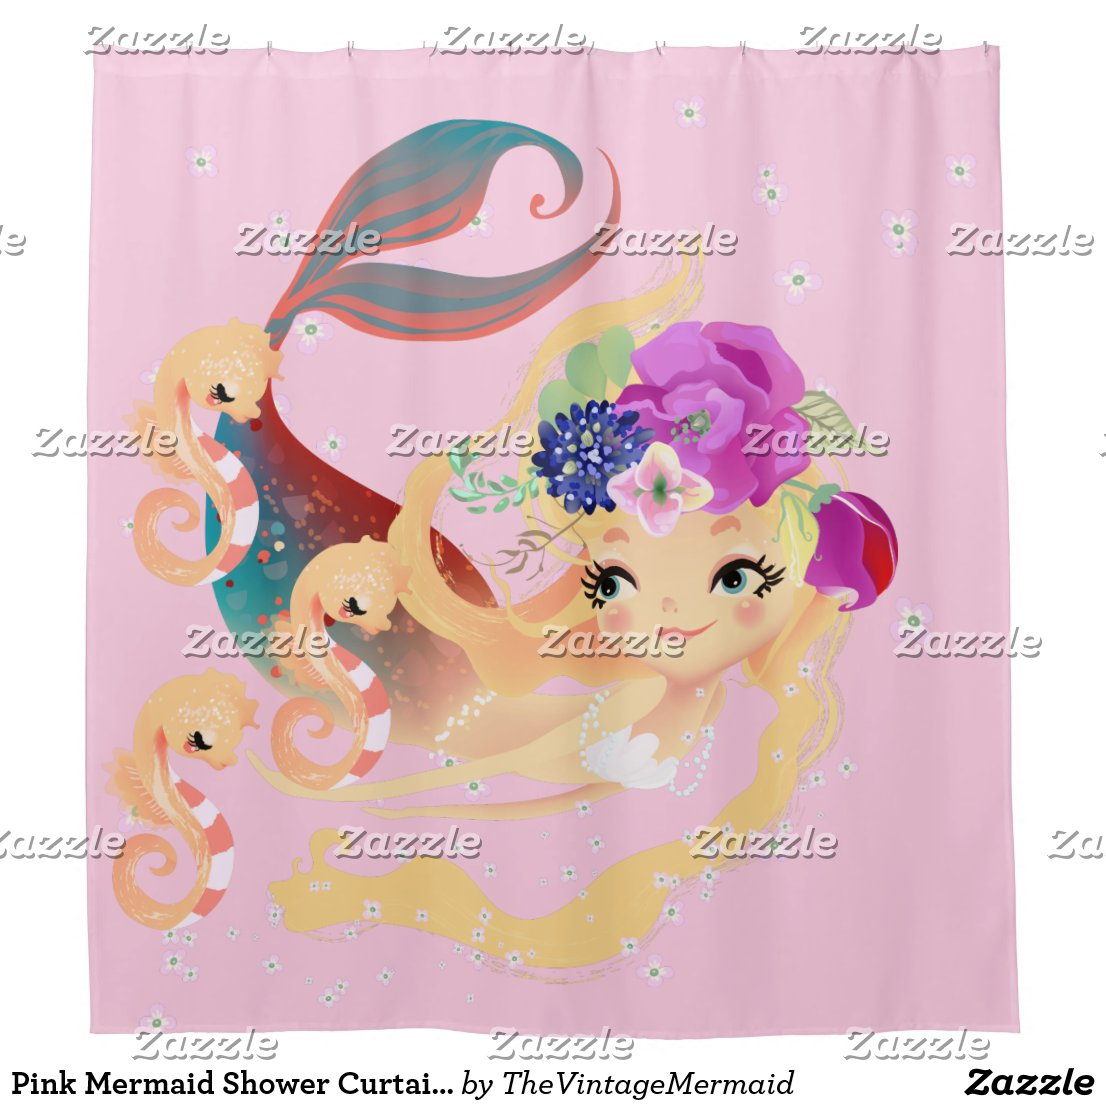 Pink Mermaid Shower Curtain Baby Seahorses